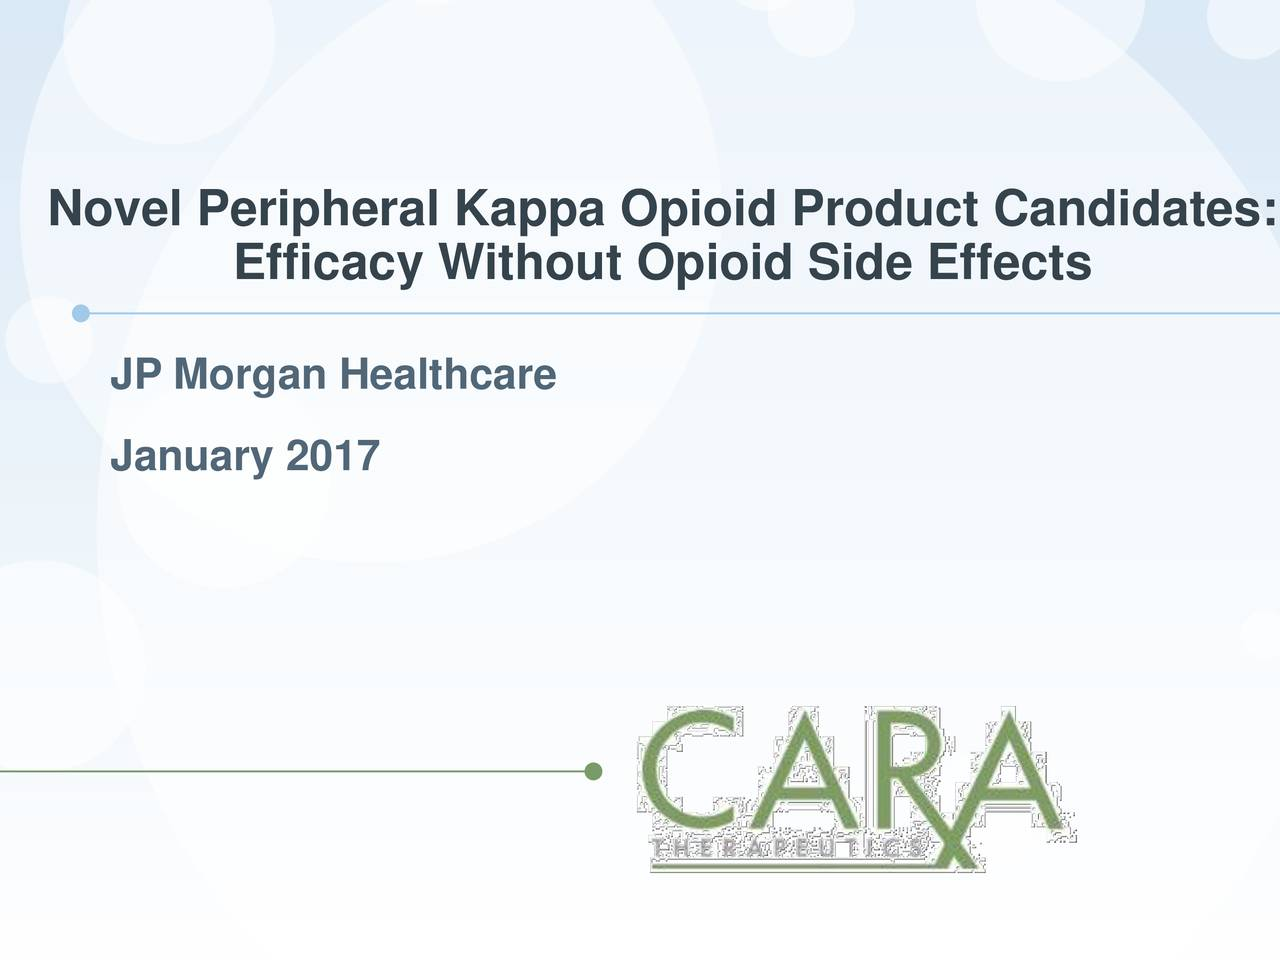 Efficacy Without Opioid Side Effects JP Morgan Healthcare January 2017